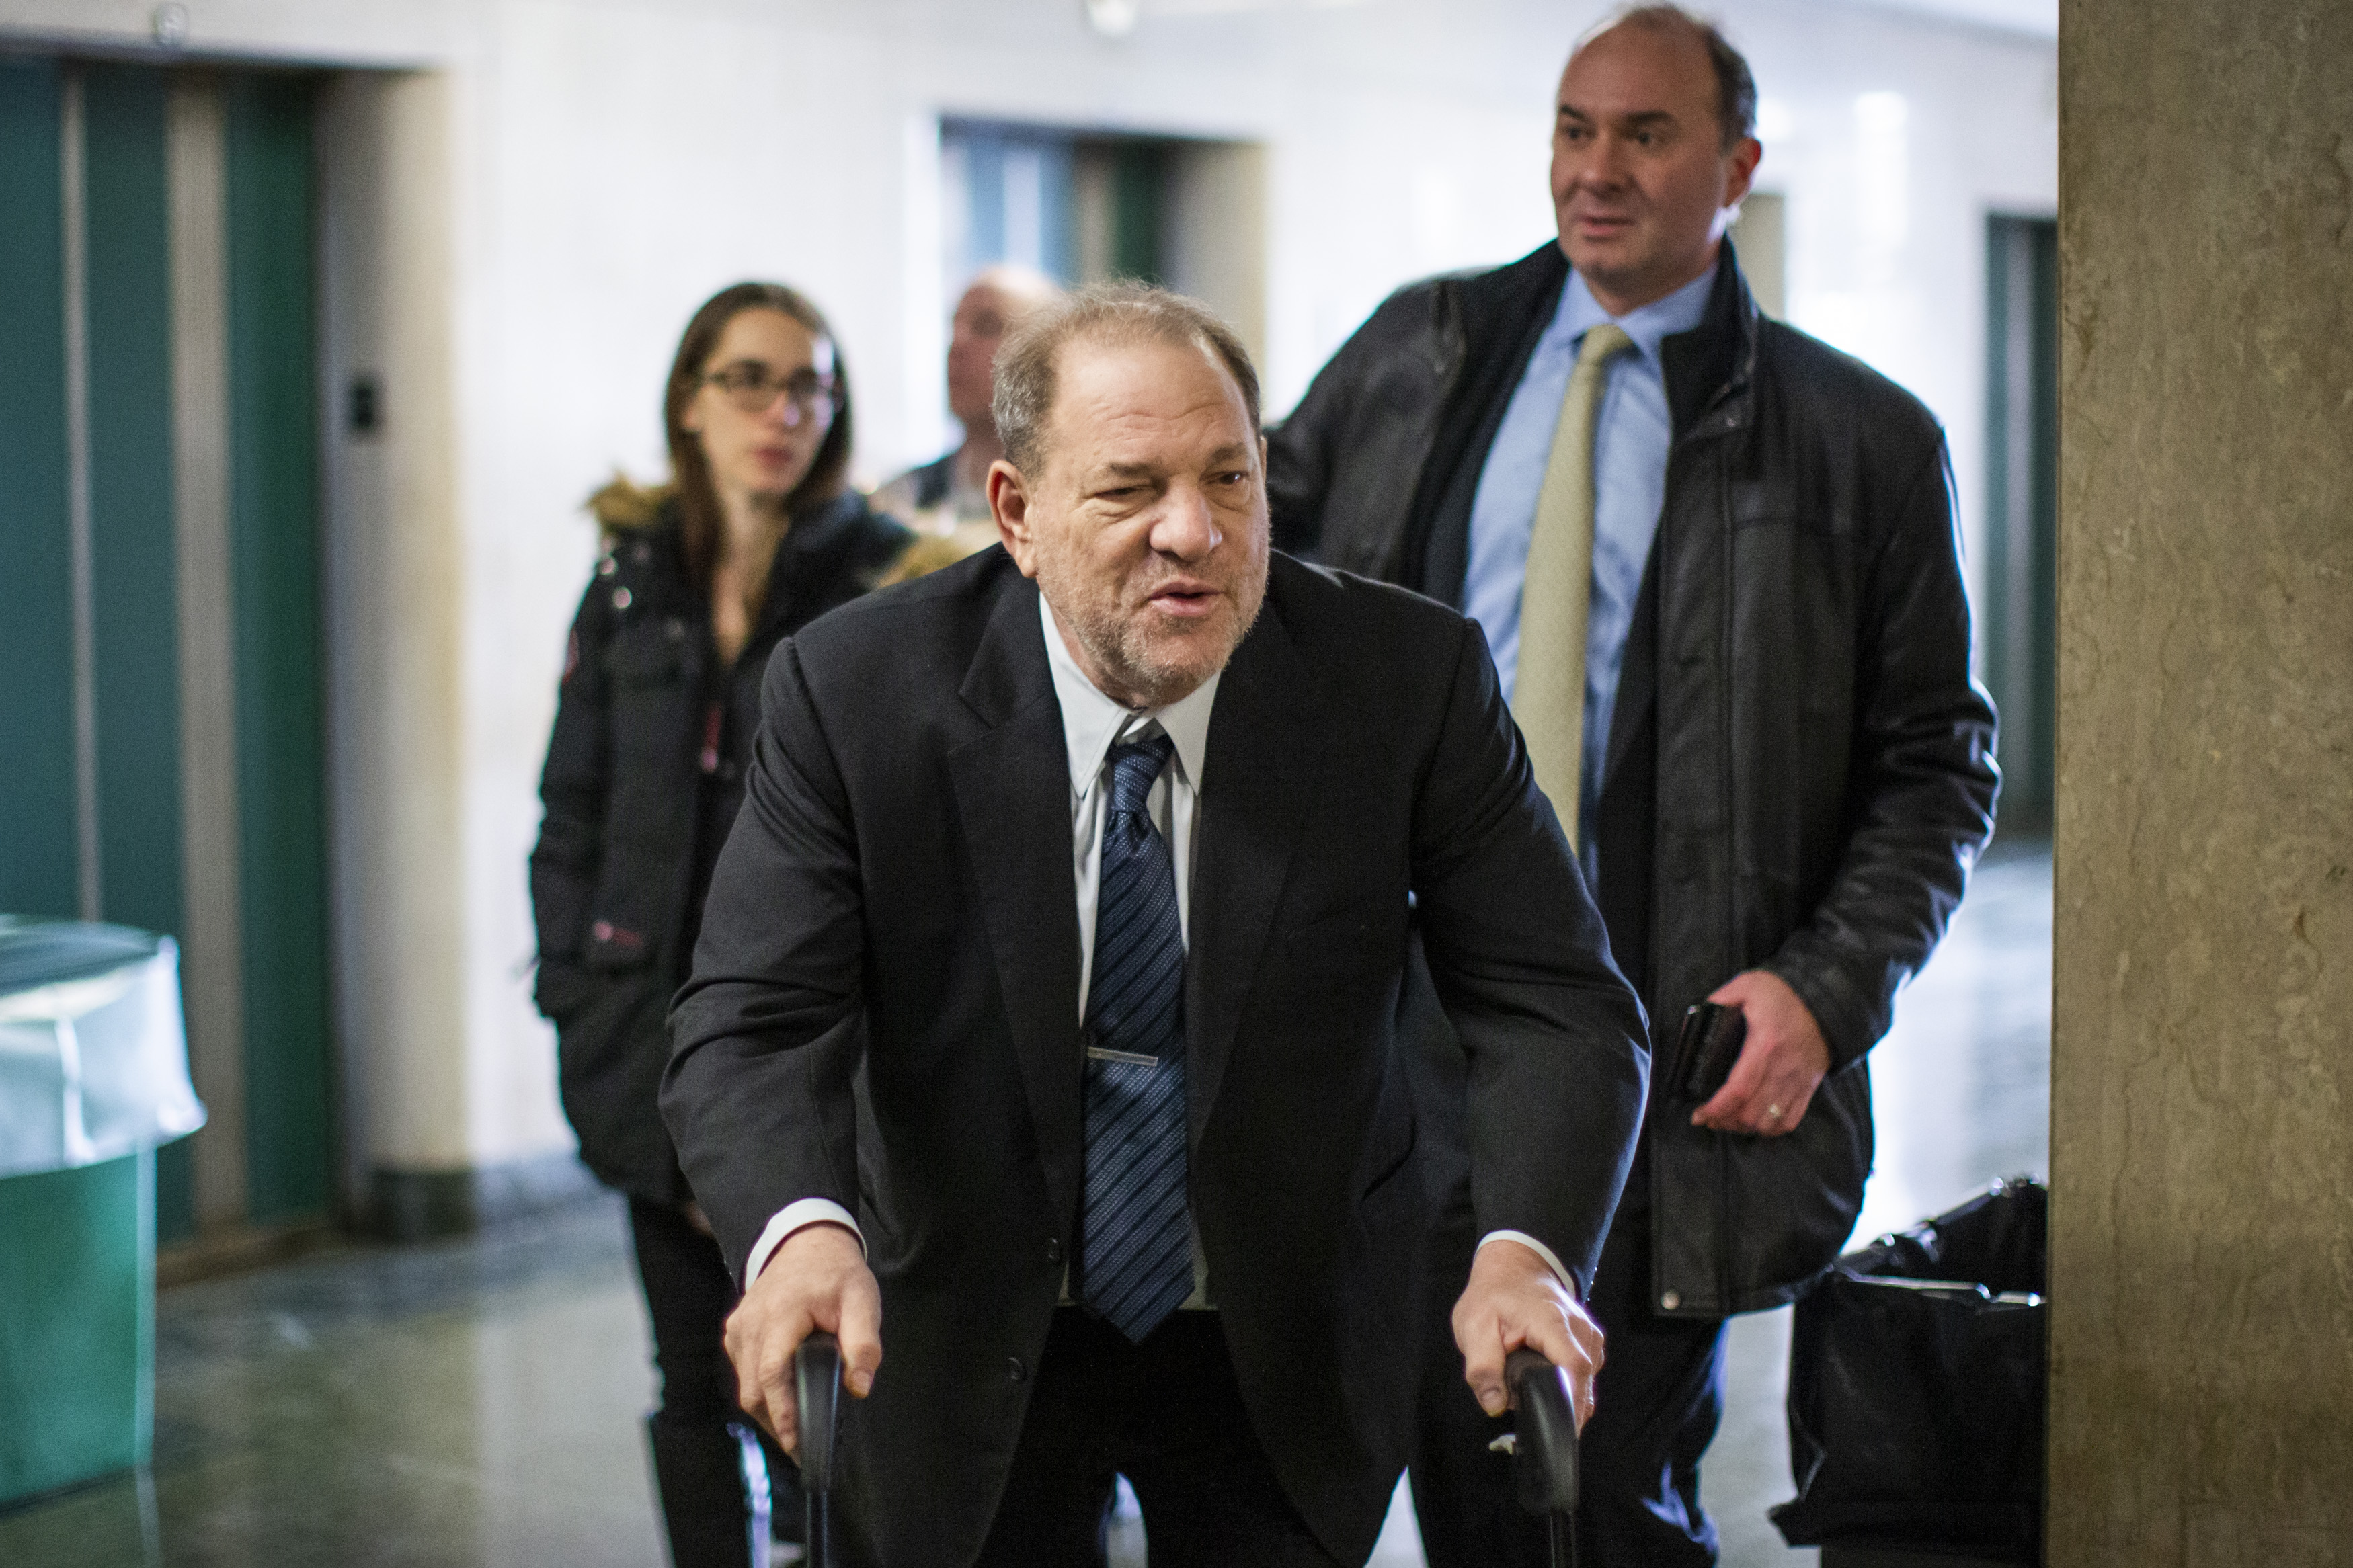 Harvey Weinstein arrives at the courtroom for his sexual assault trial at Manhattan criminal court on Feb. 3, 2020 in New York City.